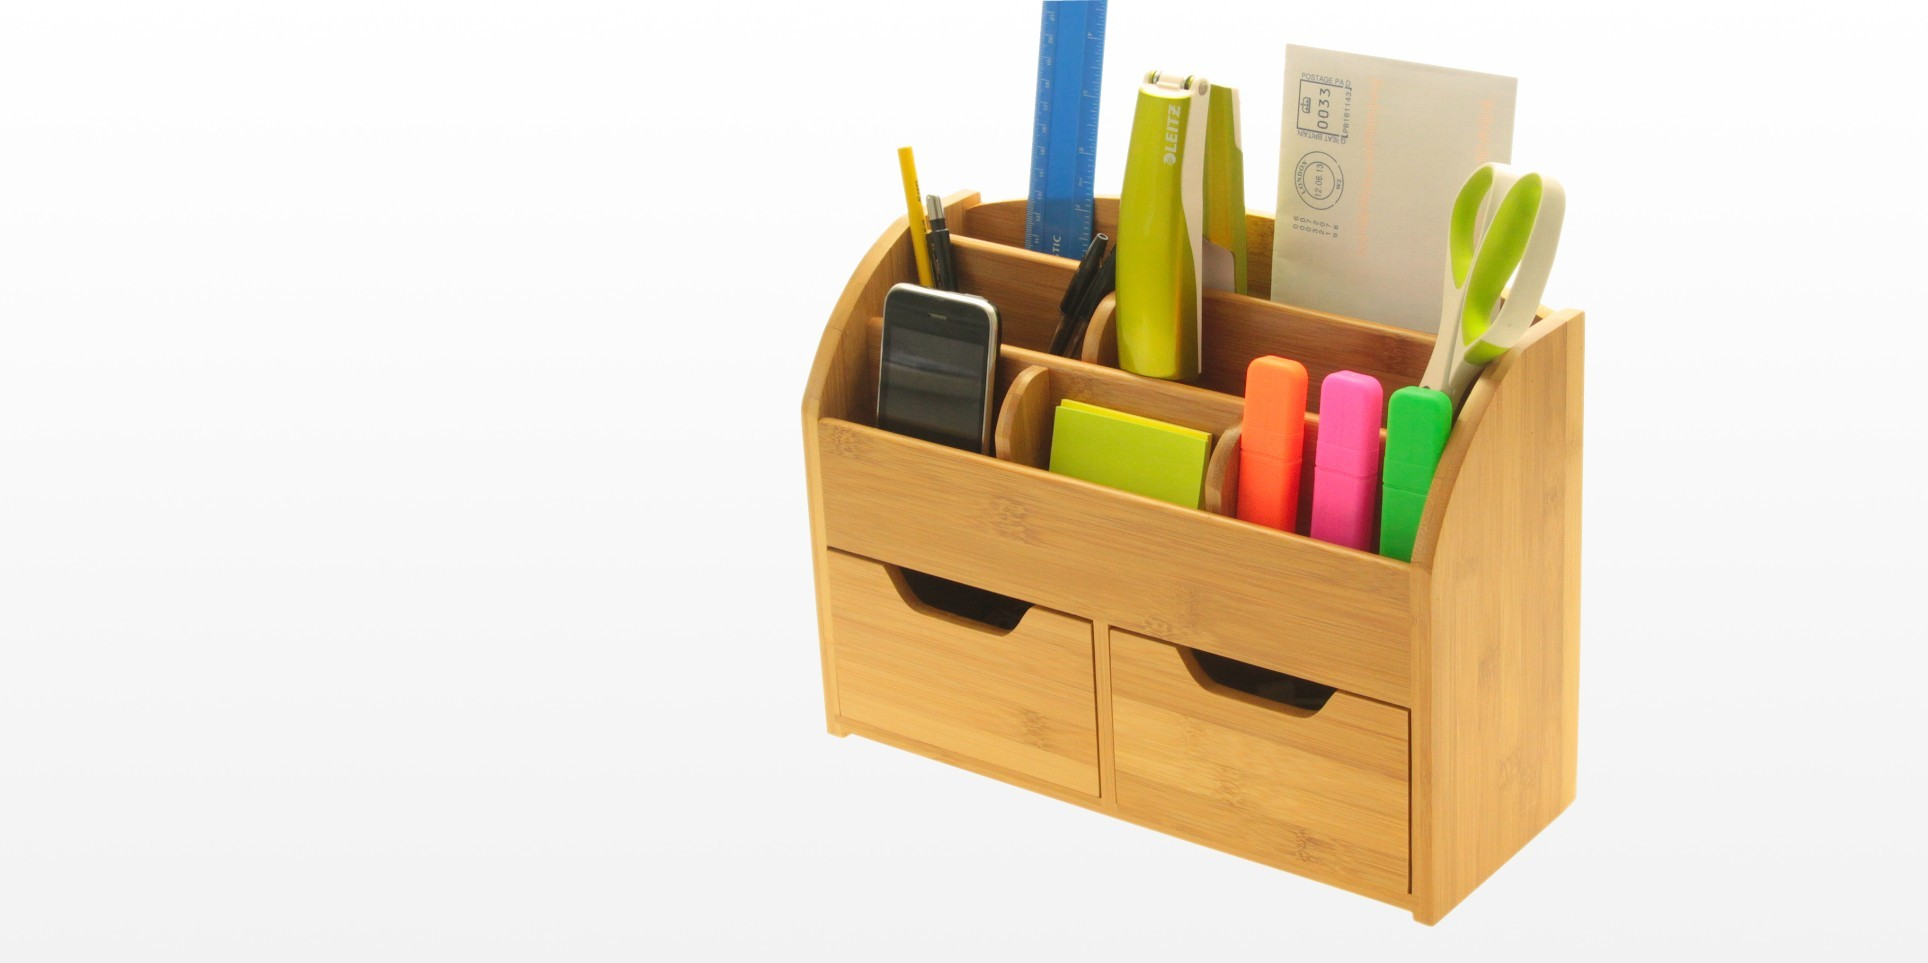 Desk stationery box wall mounted organiser - Desk stationery organiser ...